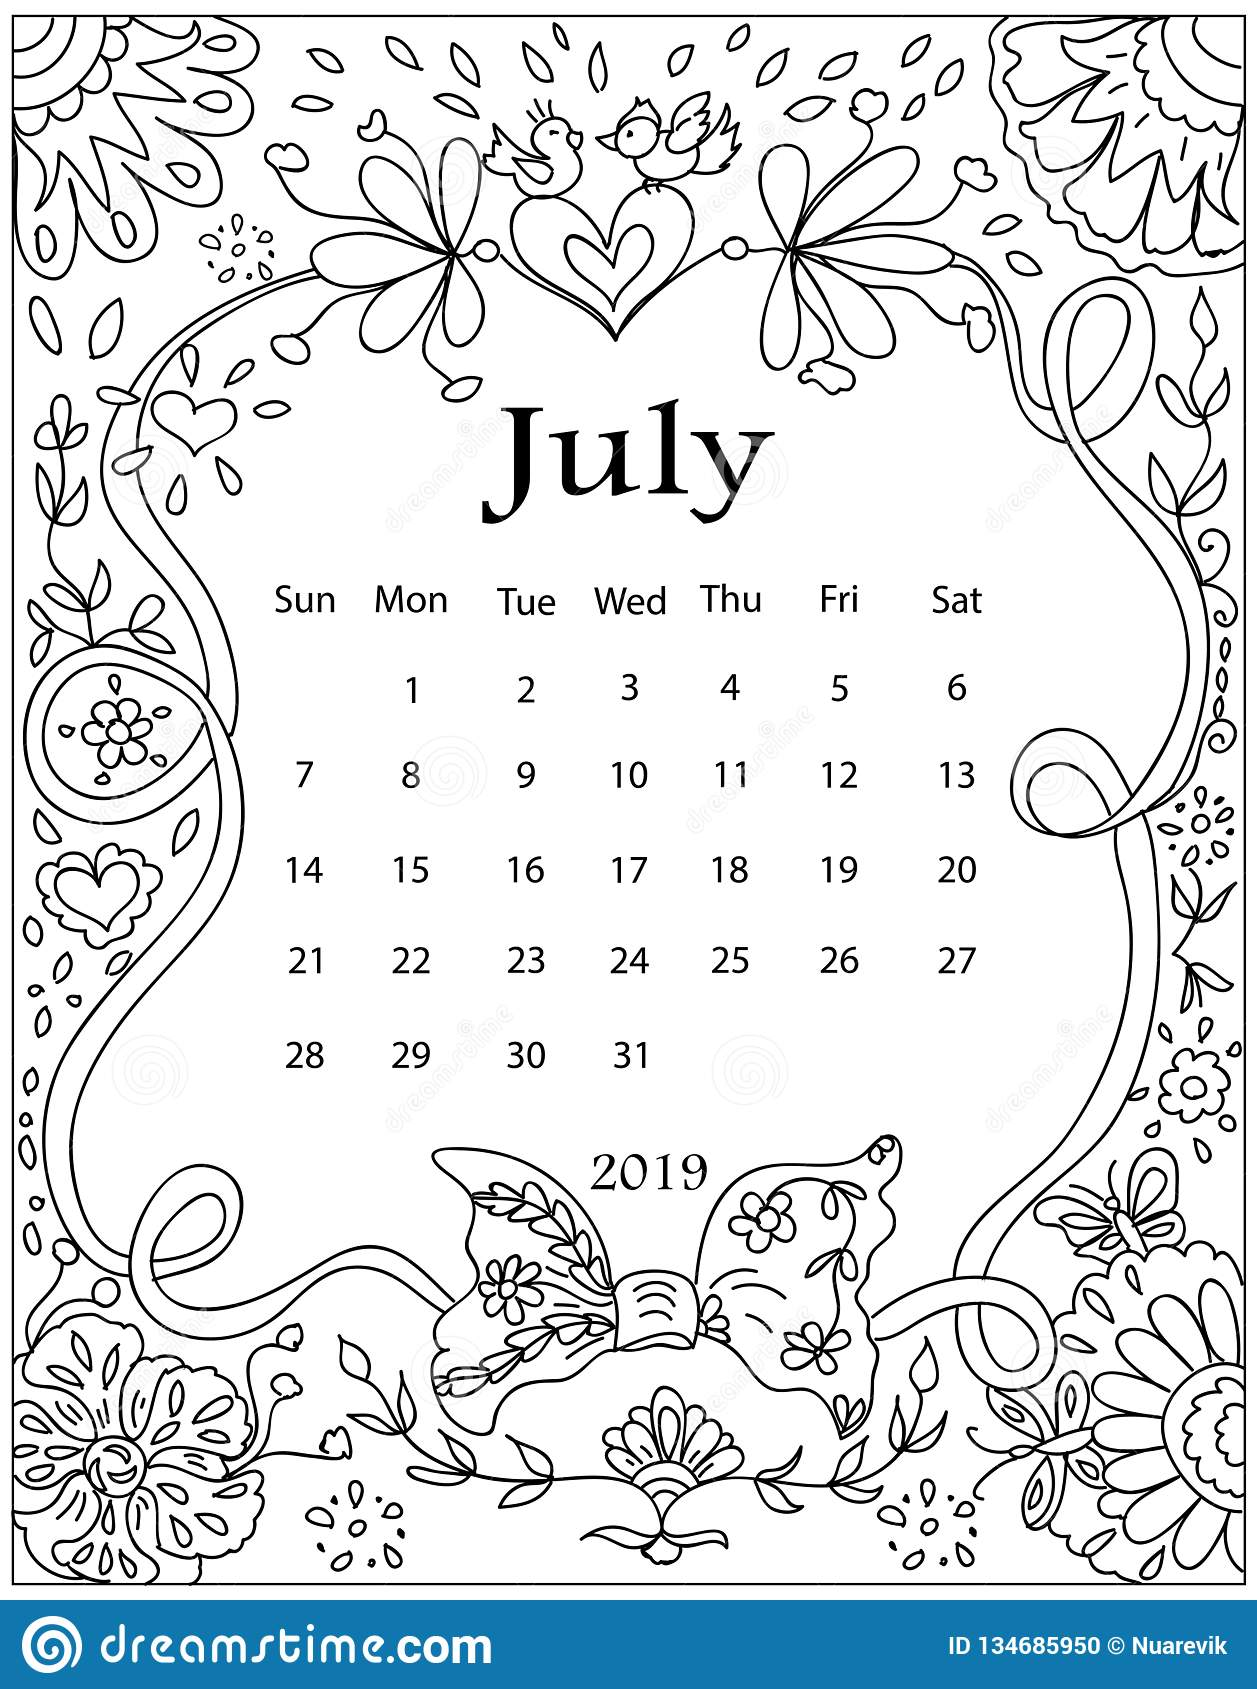 Adult Calendar 2019 Adult Coloring Page With Monthly Calendar Of 2019 Year Isolated On